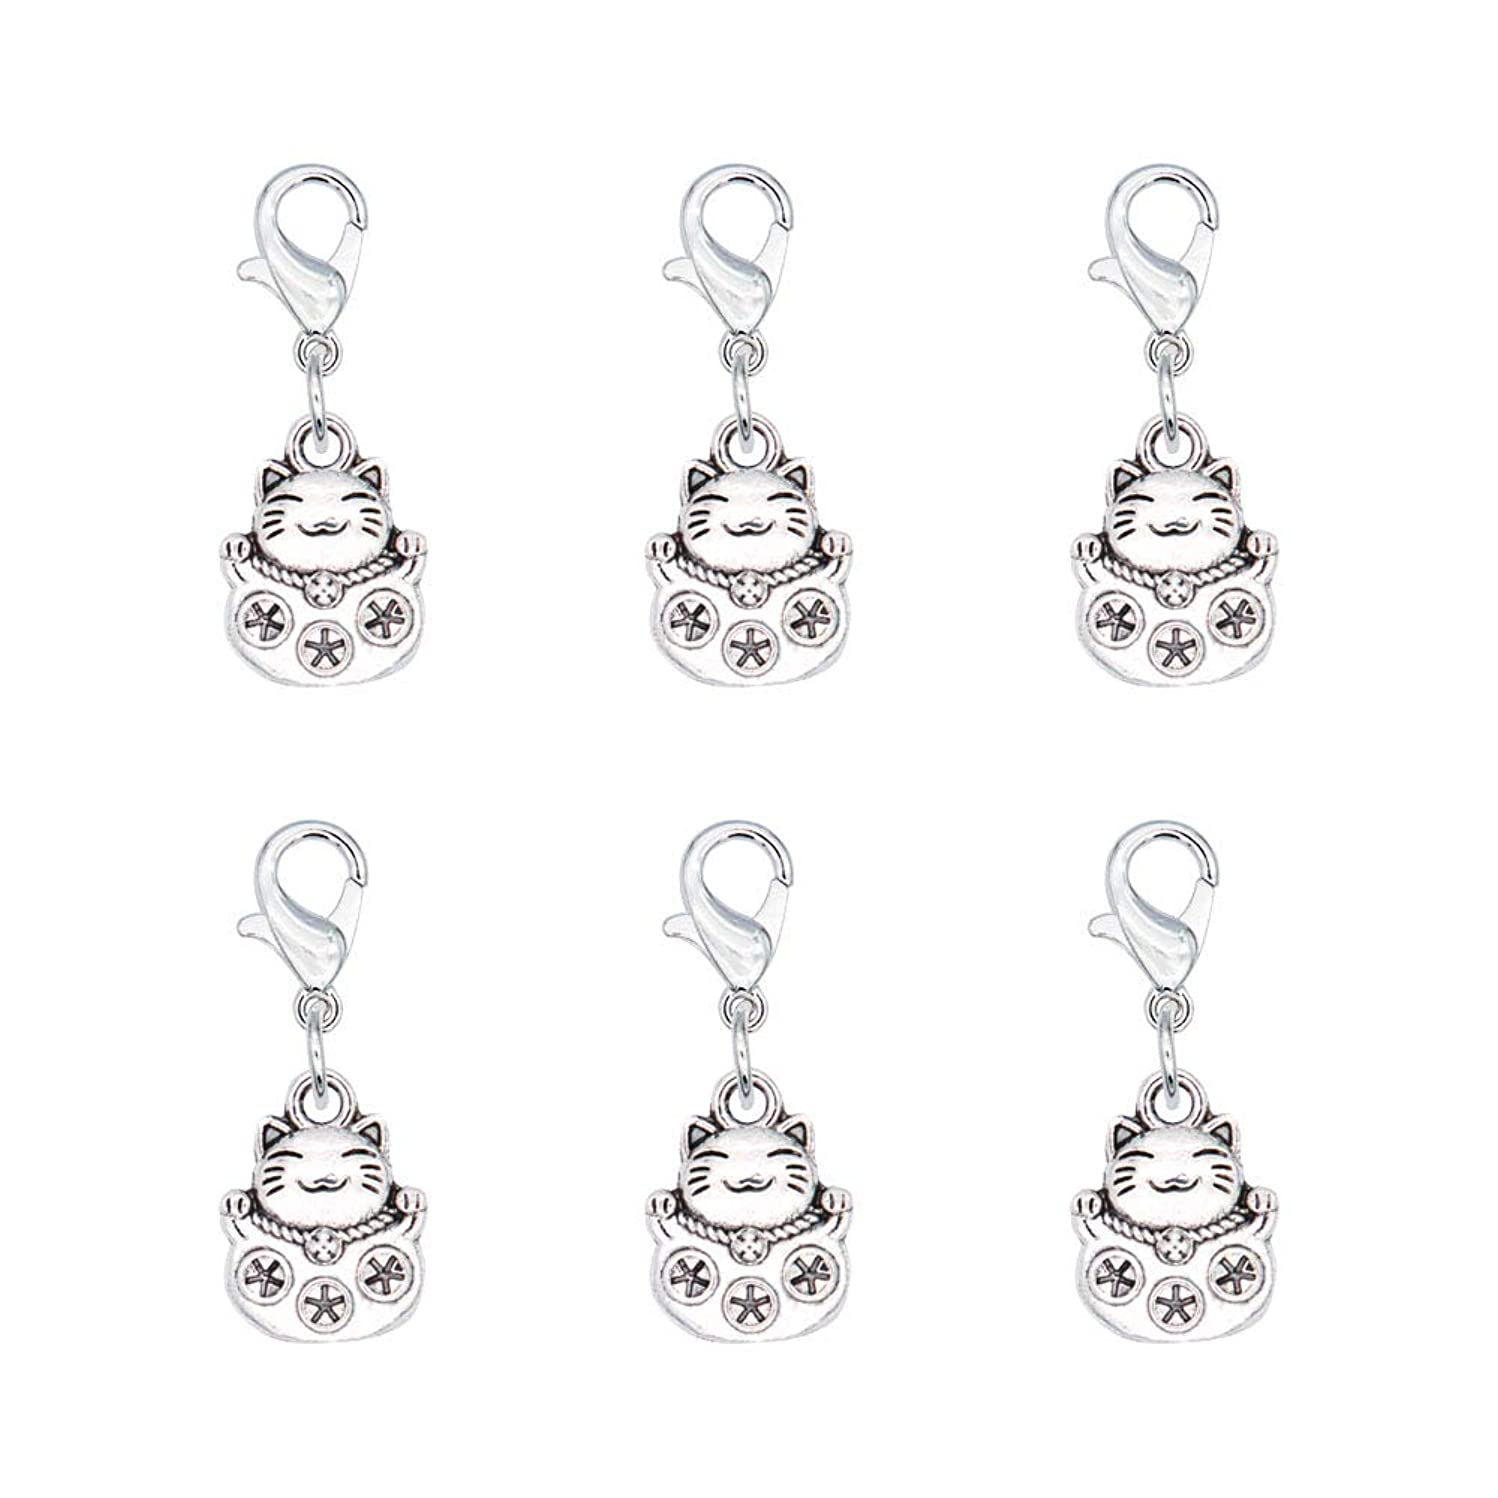 Ascrafter Plutus Cat Zipper Pull Charms, Set of 6 Lucky Cat Stitch Markers for Knitting, Crochet Markers, Pet Purse Charms, Jewelry Charm Pendant